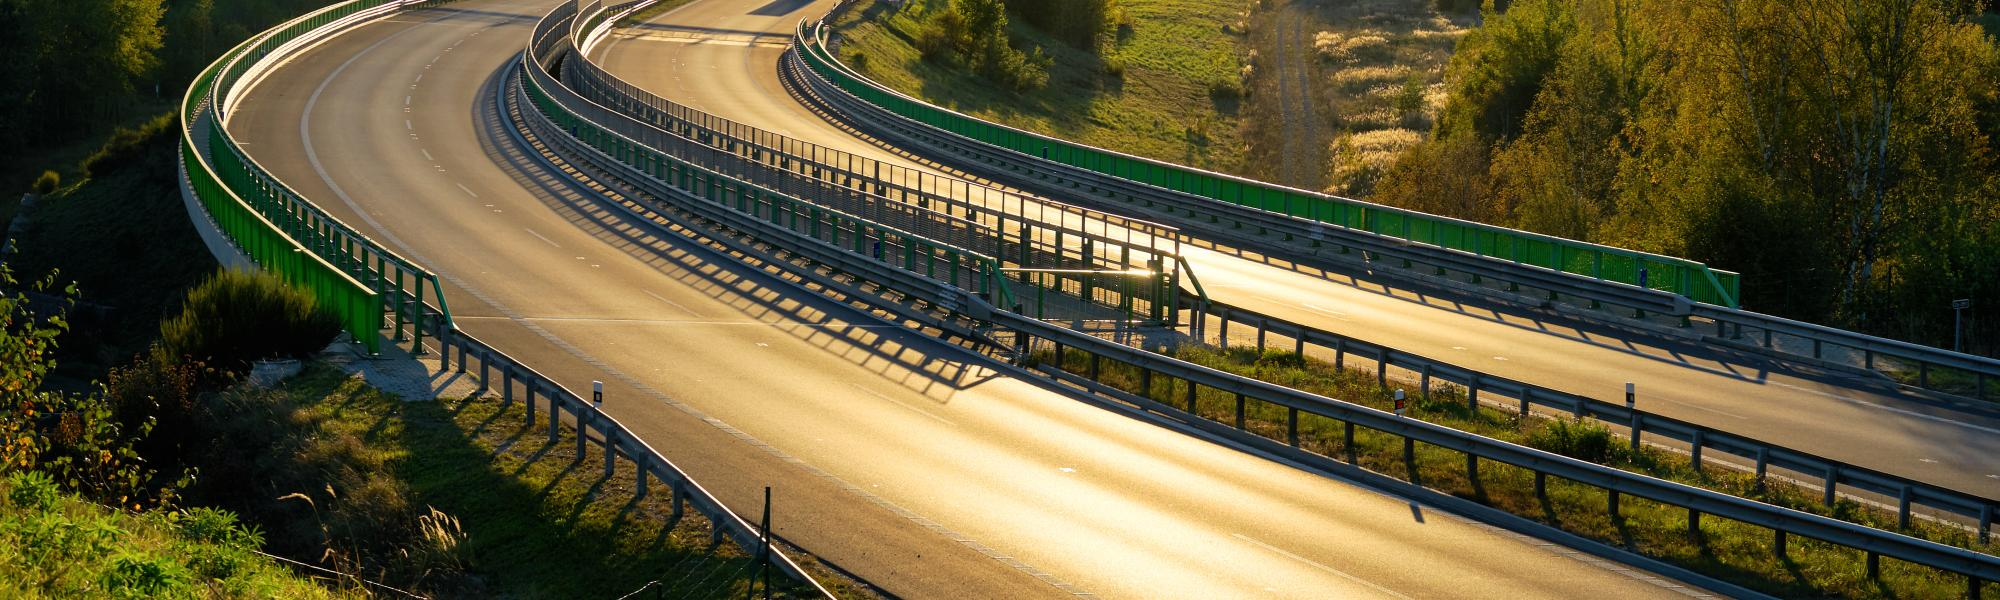 IRU/EU Conference: The European Road Transport Conference - 6 March 2019, Brussels, Belgium